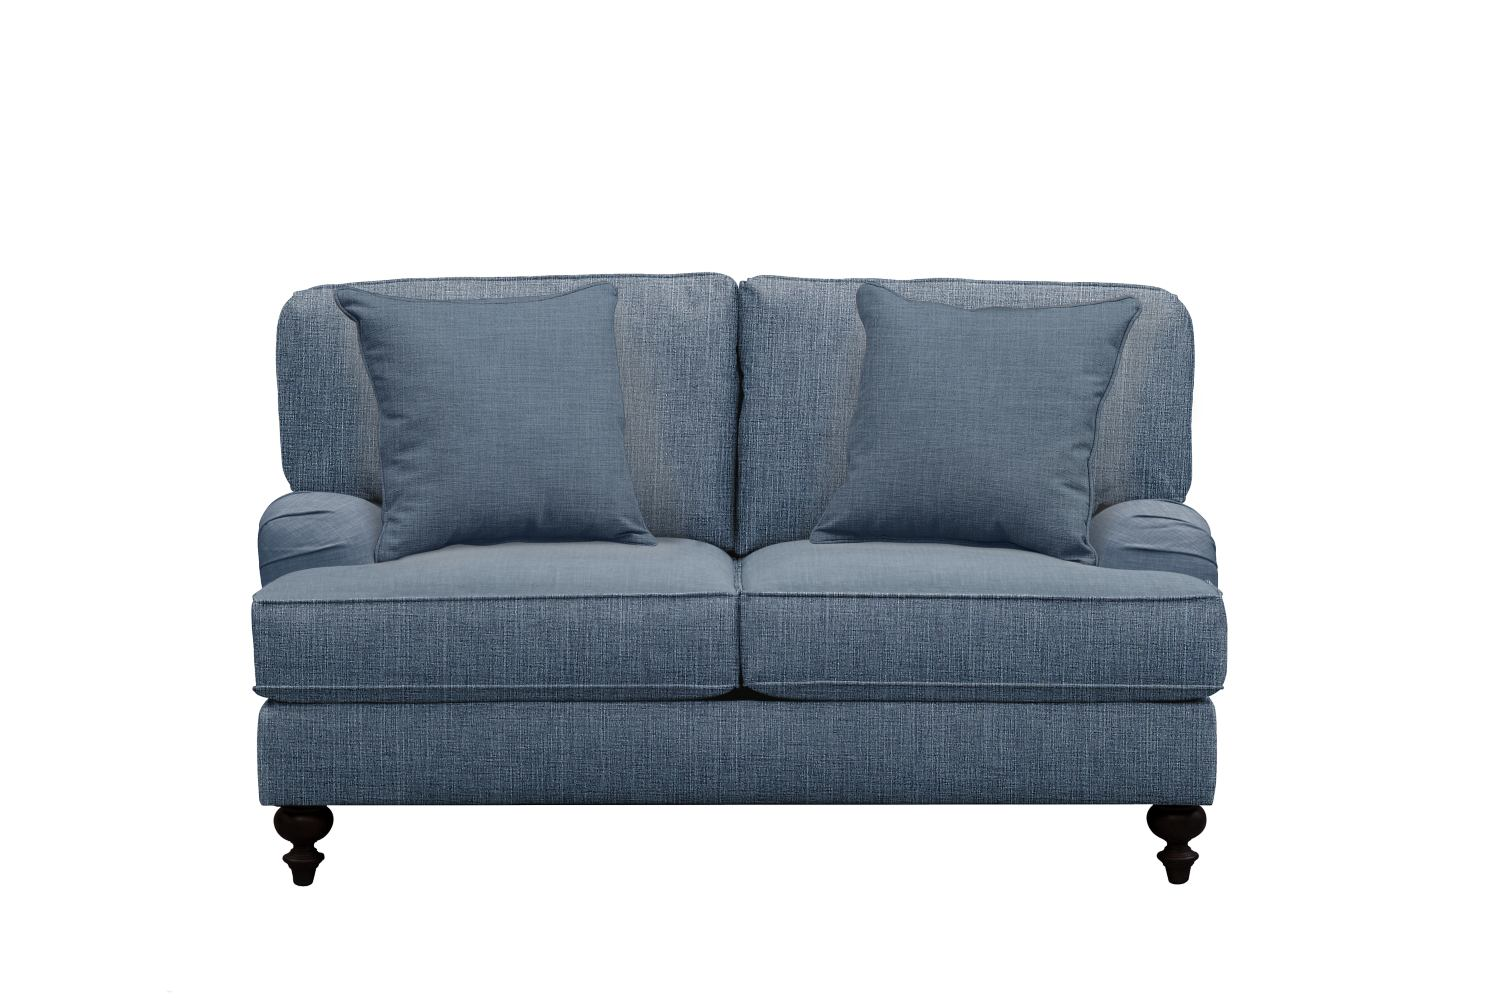 "Living Room Furniture - Avery English Arm Sofa 62"" Milford II Indigo  w/ Milford II Indigo Pillow"